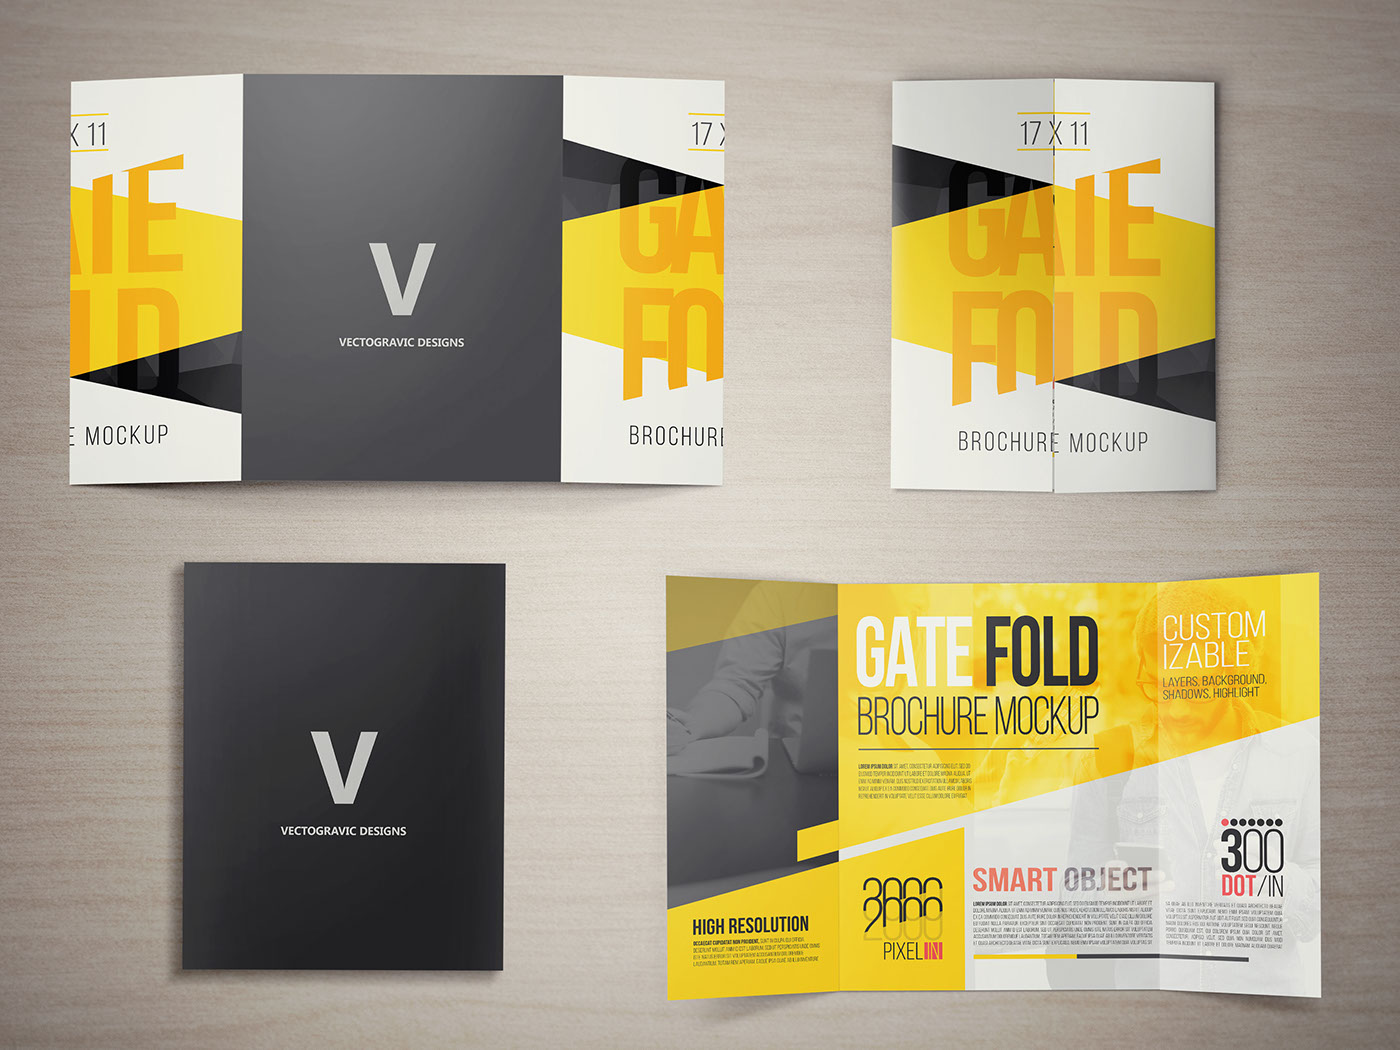 17 x 11 Gate Fold Brochure Mockup on Behance